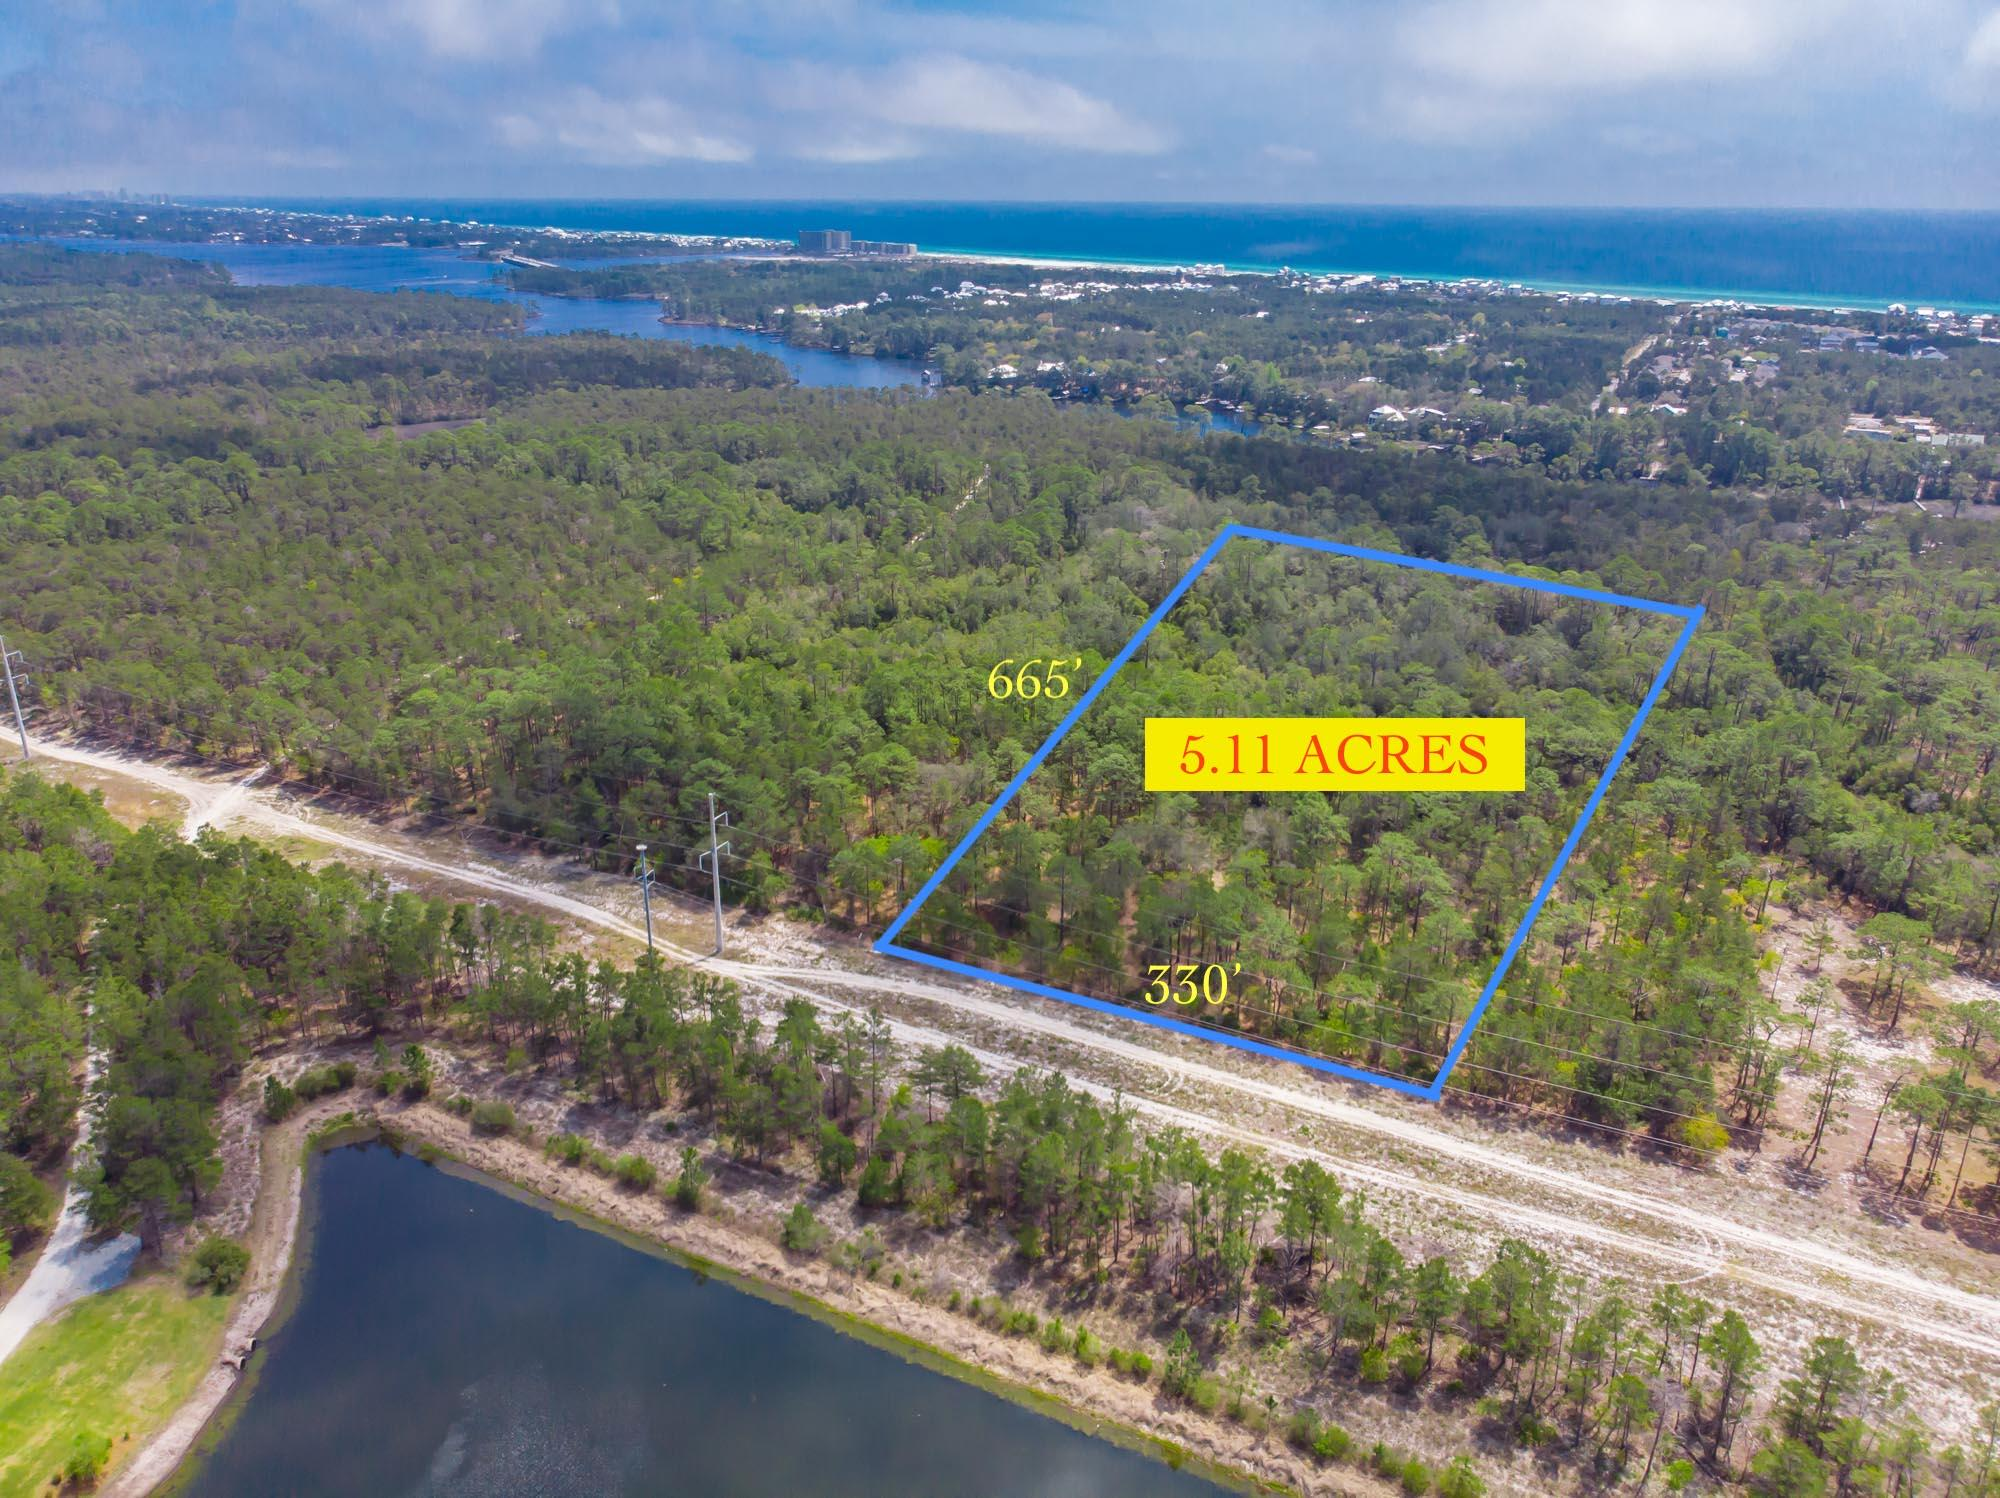 Rare opportunity to purchase over 5 acres of vacant land in Inlet beach. The property is adjacent to Water Sound Origins development. Property is high and dry - Zoned Conservation Residential for 2 homes per acre(10 homes). In the X flood zone. Steps from Lake Powell and short drive to the beach.